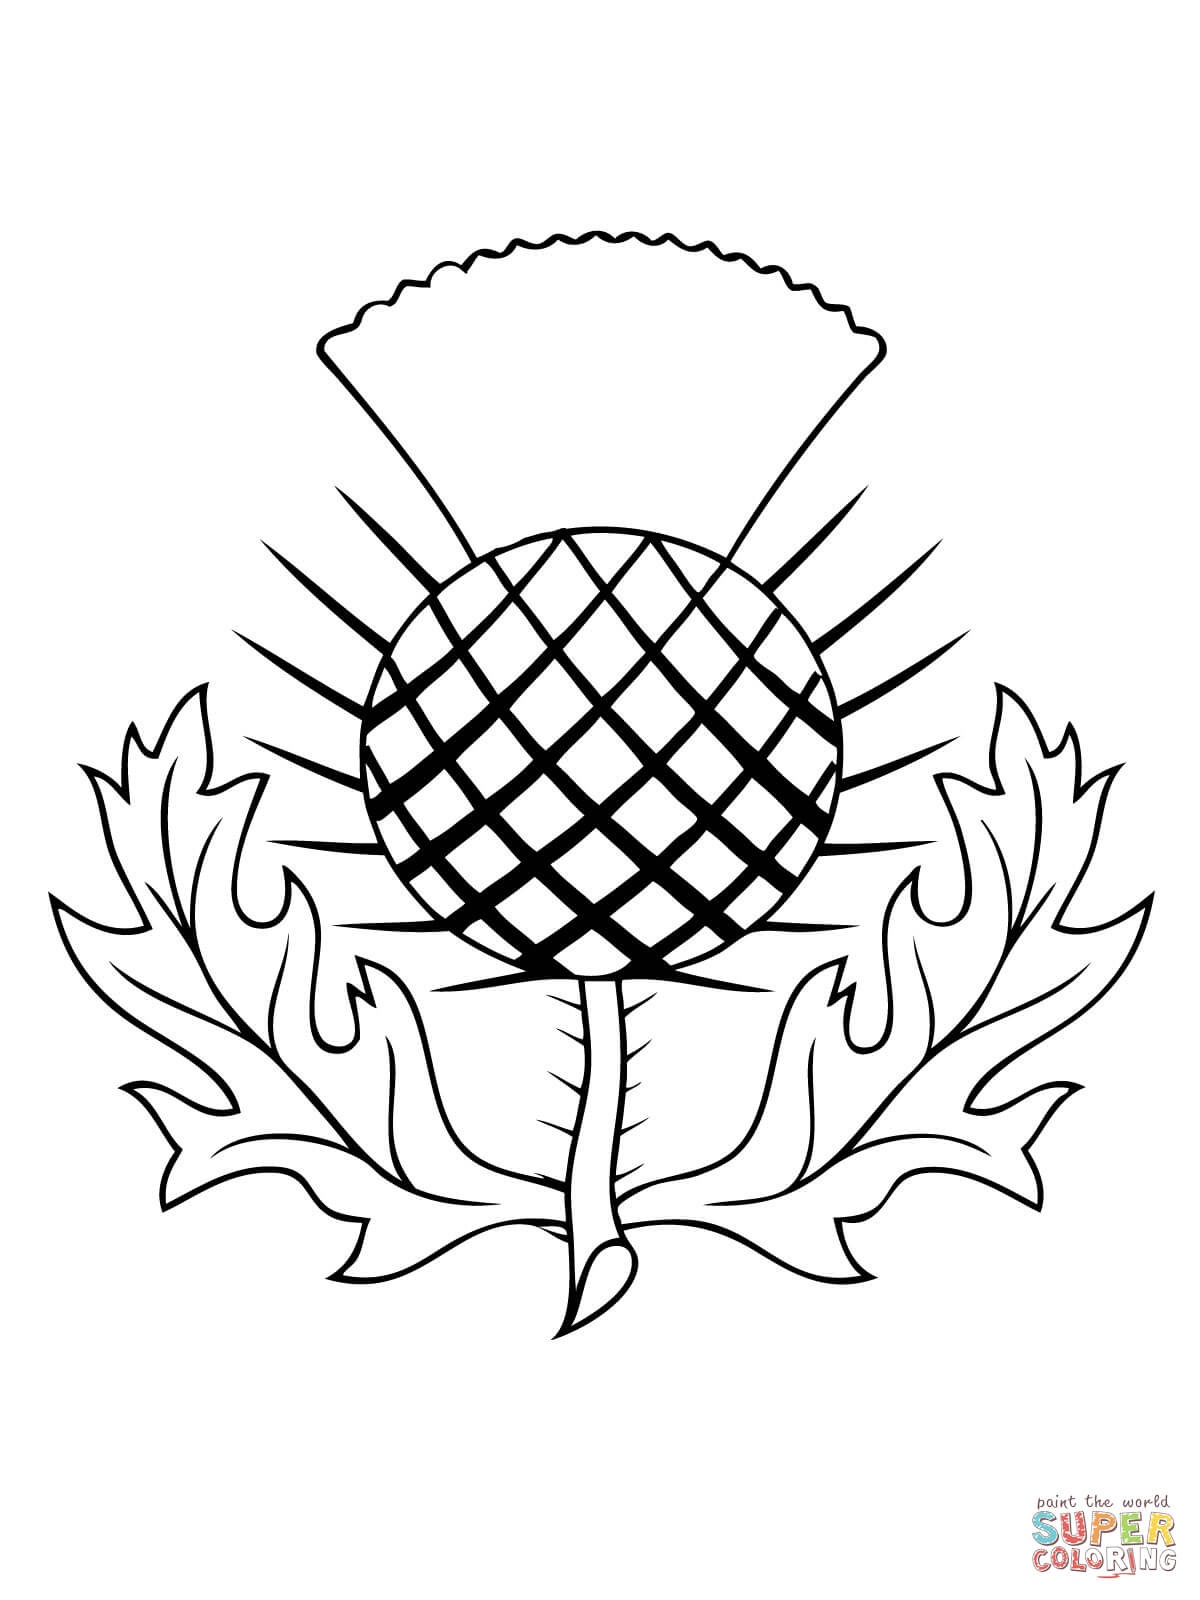 The Thistle Of Scotland Coloring Page | Free Printable Coloring Pages - Free Printable Scottish Flag